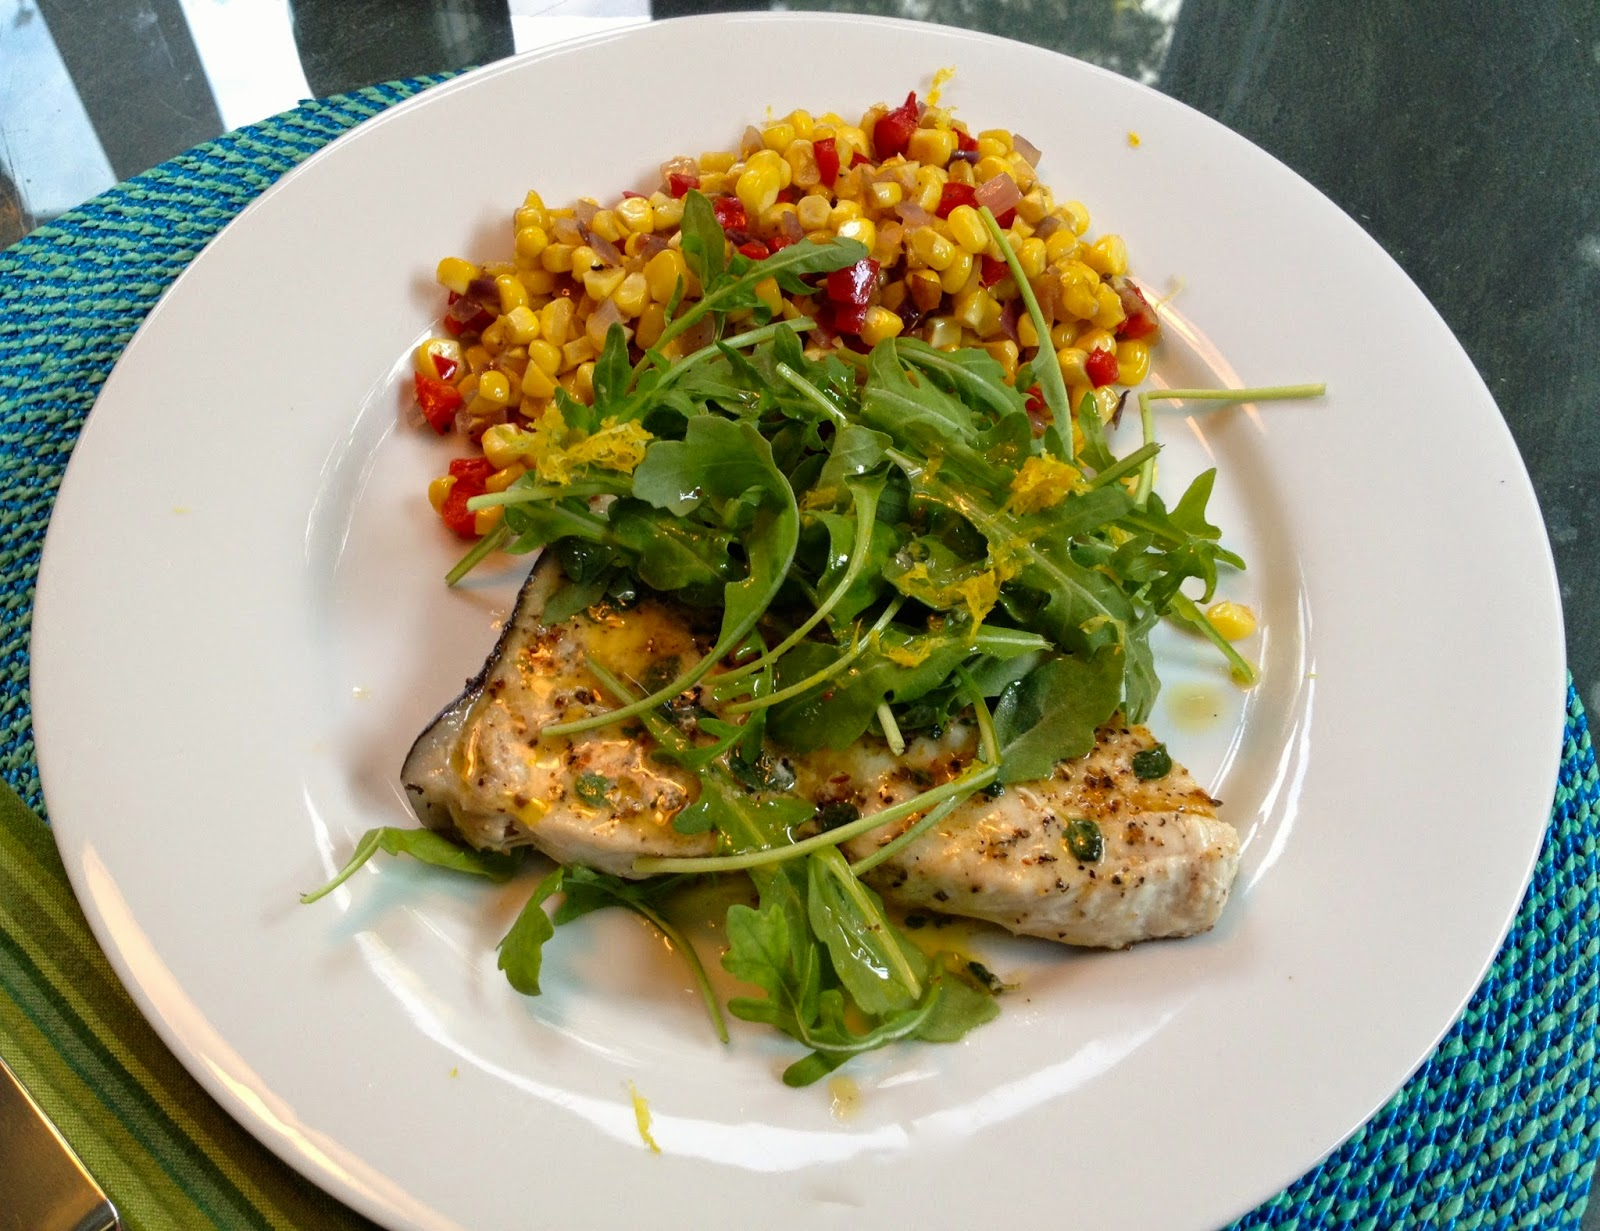 Amazing 5. When Ready To Serve, Place The Swordfish On Dinner Plates Or A Serving  Platter, Pile The Arugula On Top, Drizzle With The Sauce From The Fish, ...